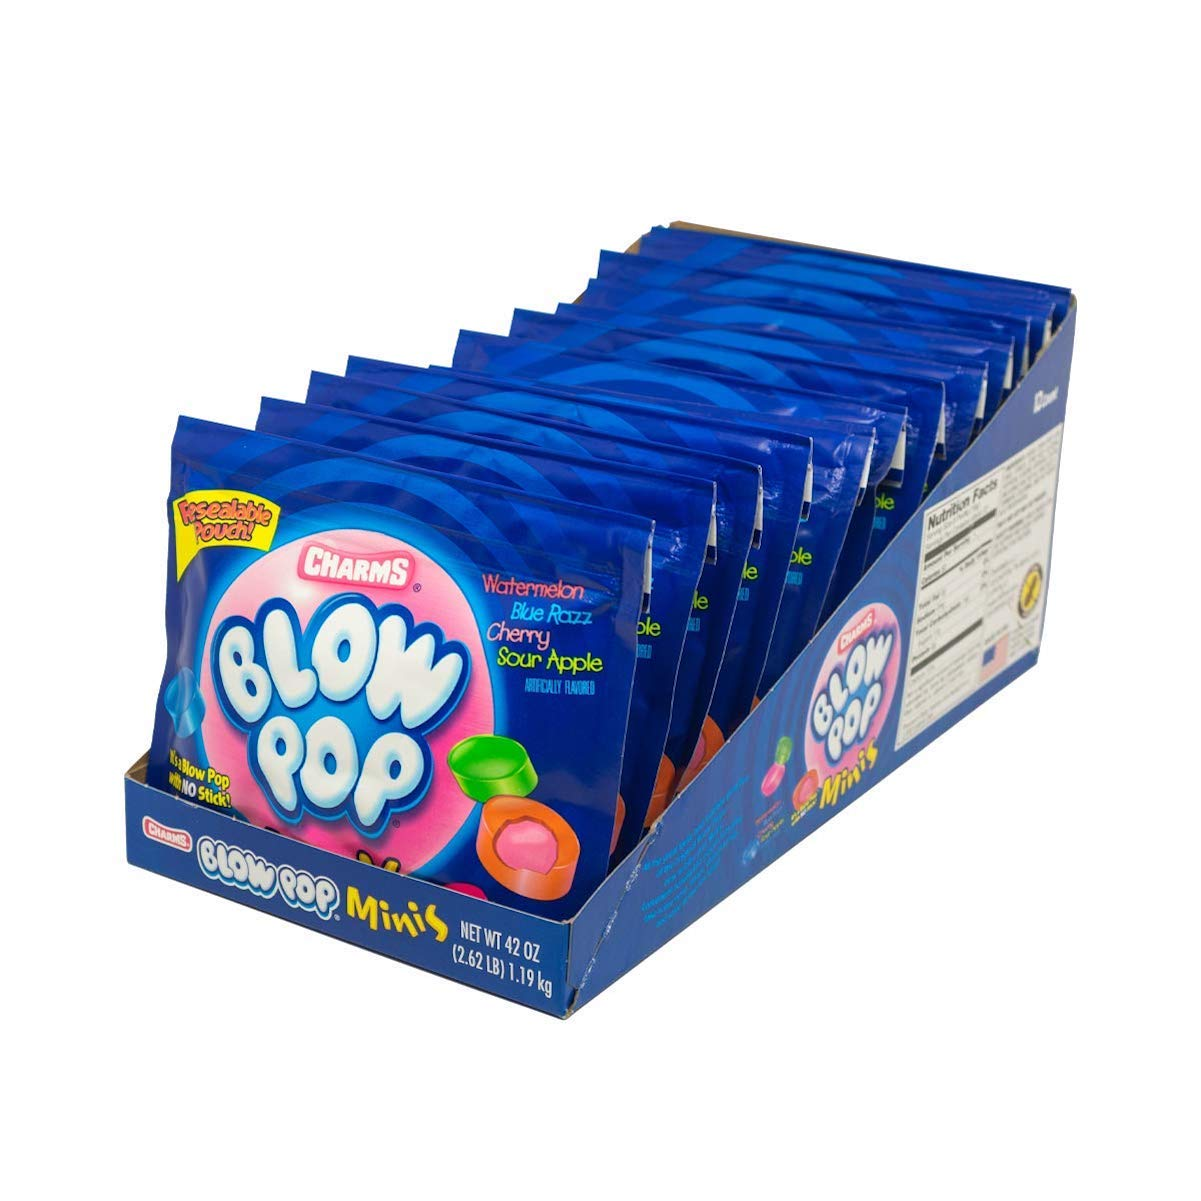 Charms Blow Pops Minis, 3.5 Oz. Bags, 12-Count by Tootsie Roll